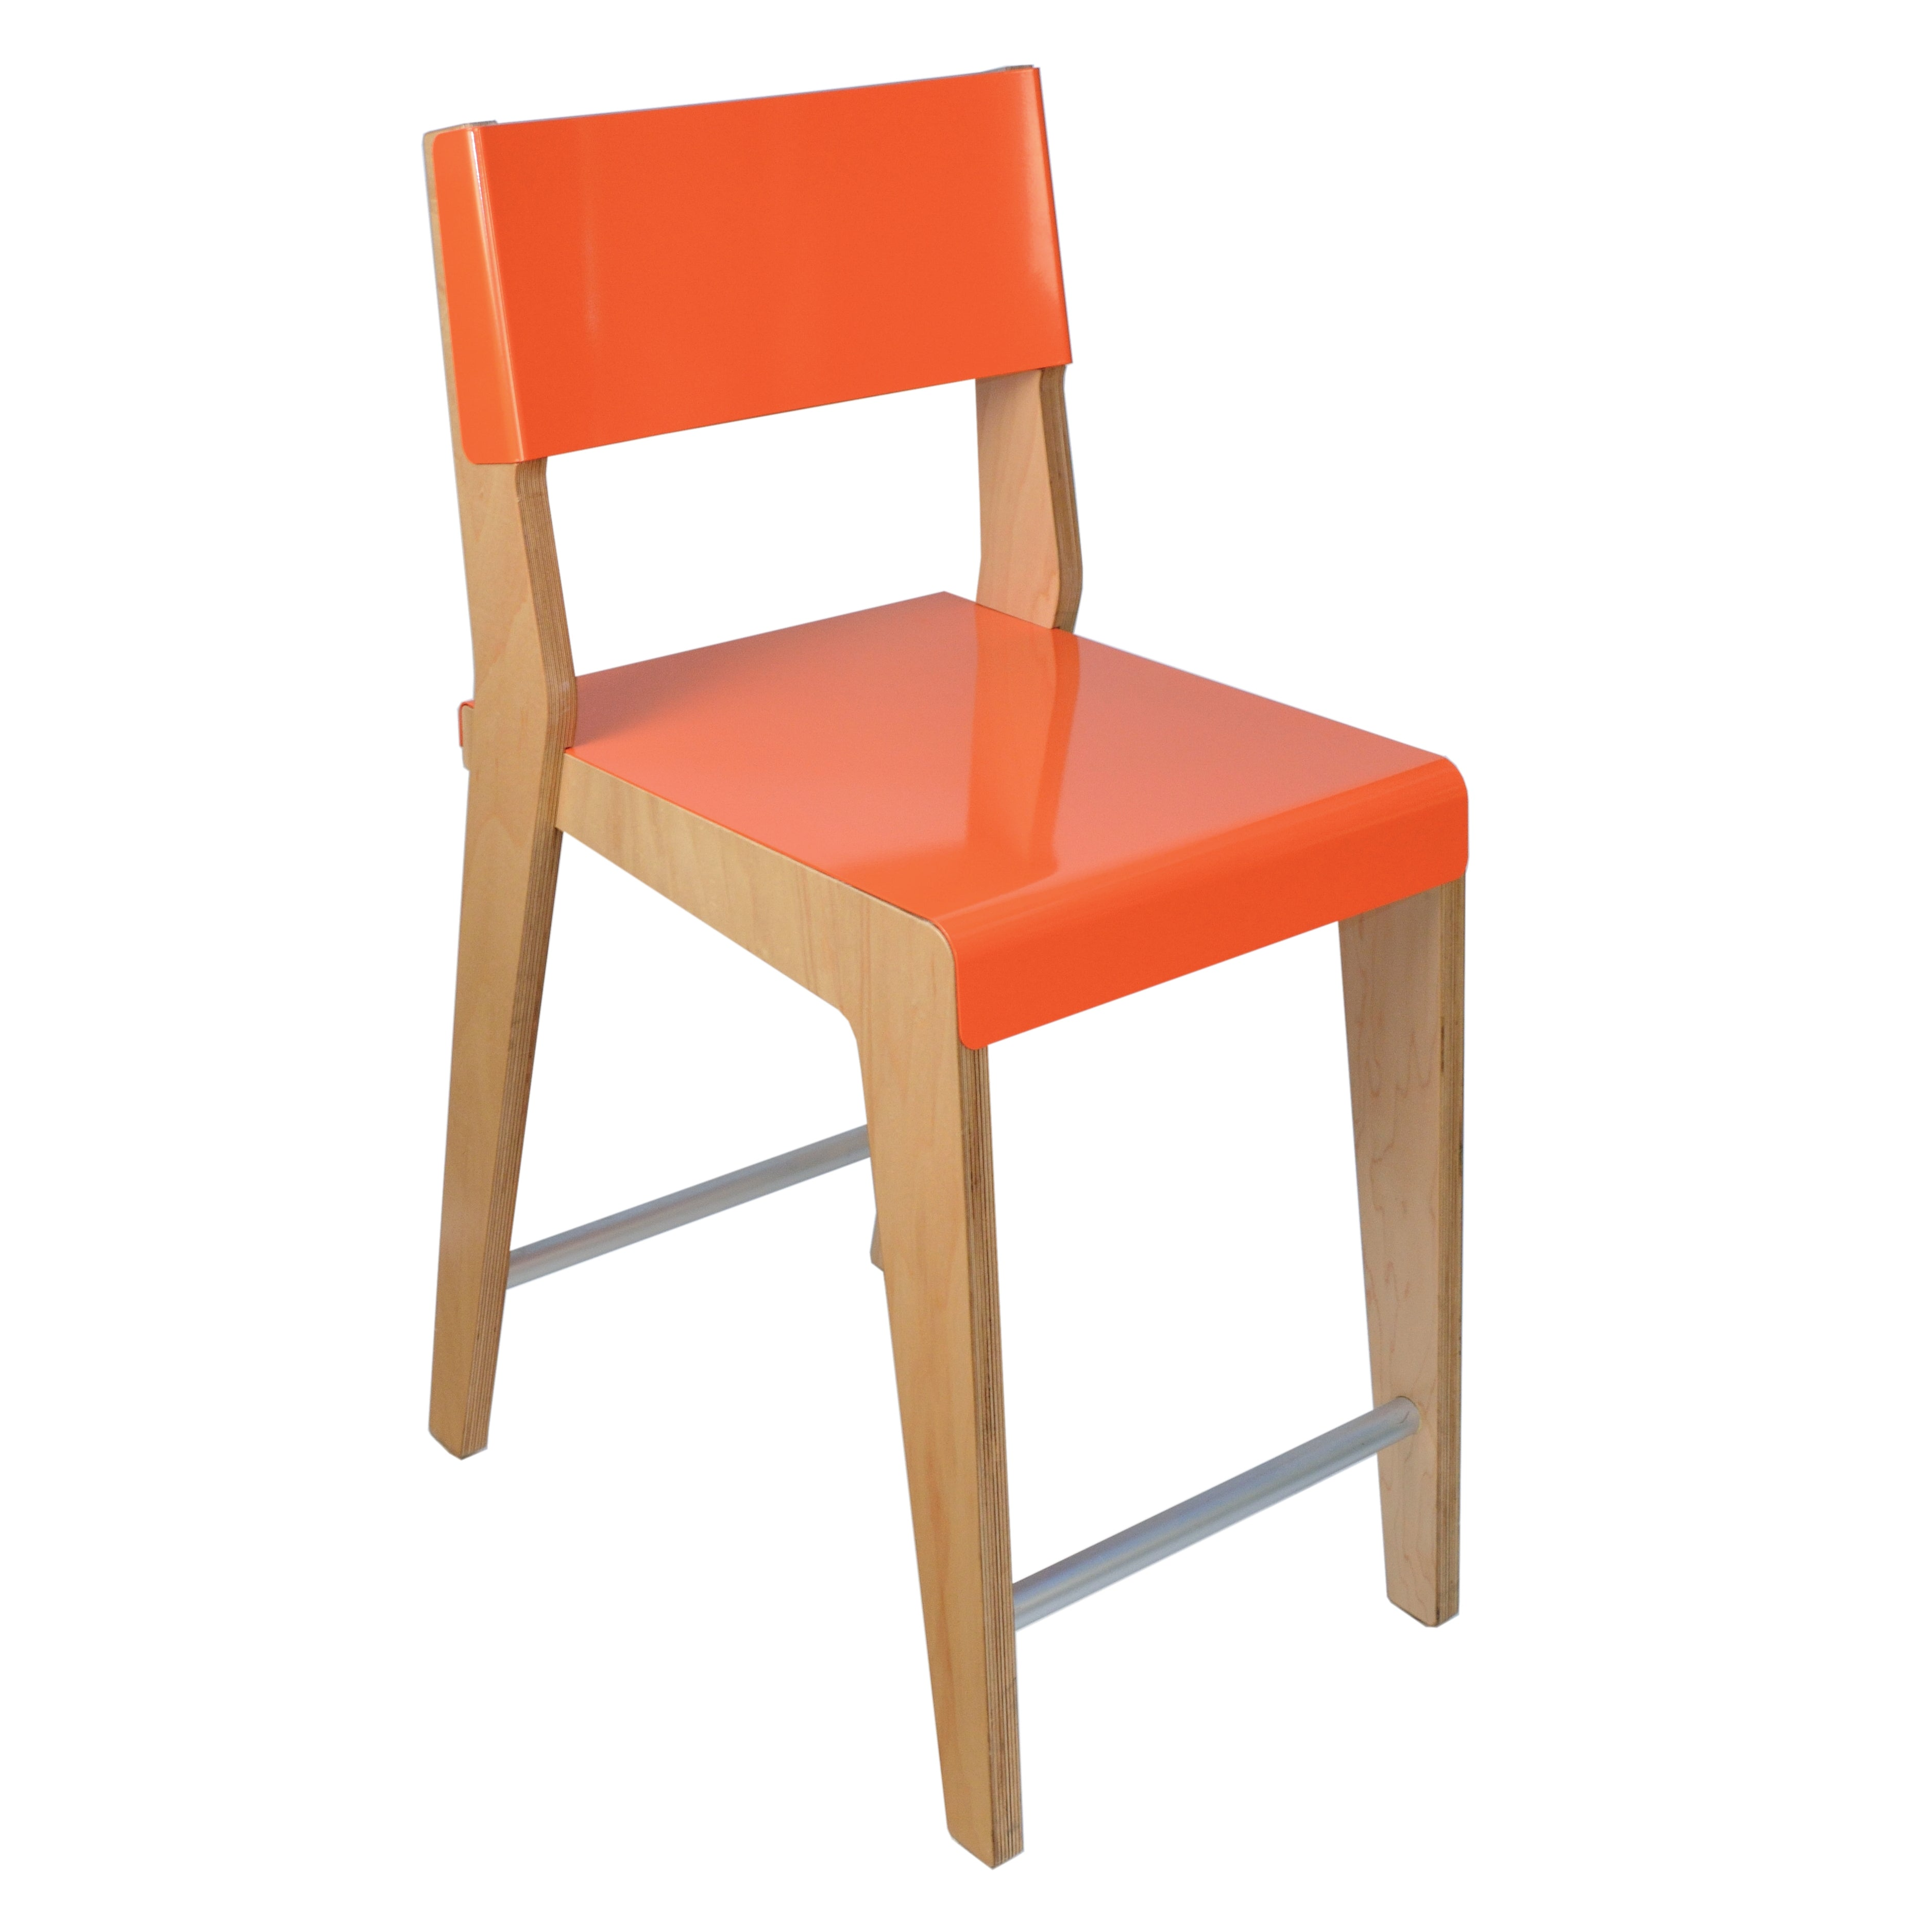 Lock Bar + Counter Stool: Counter + Orange + Maple